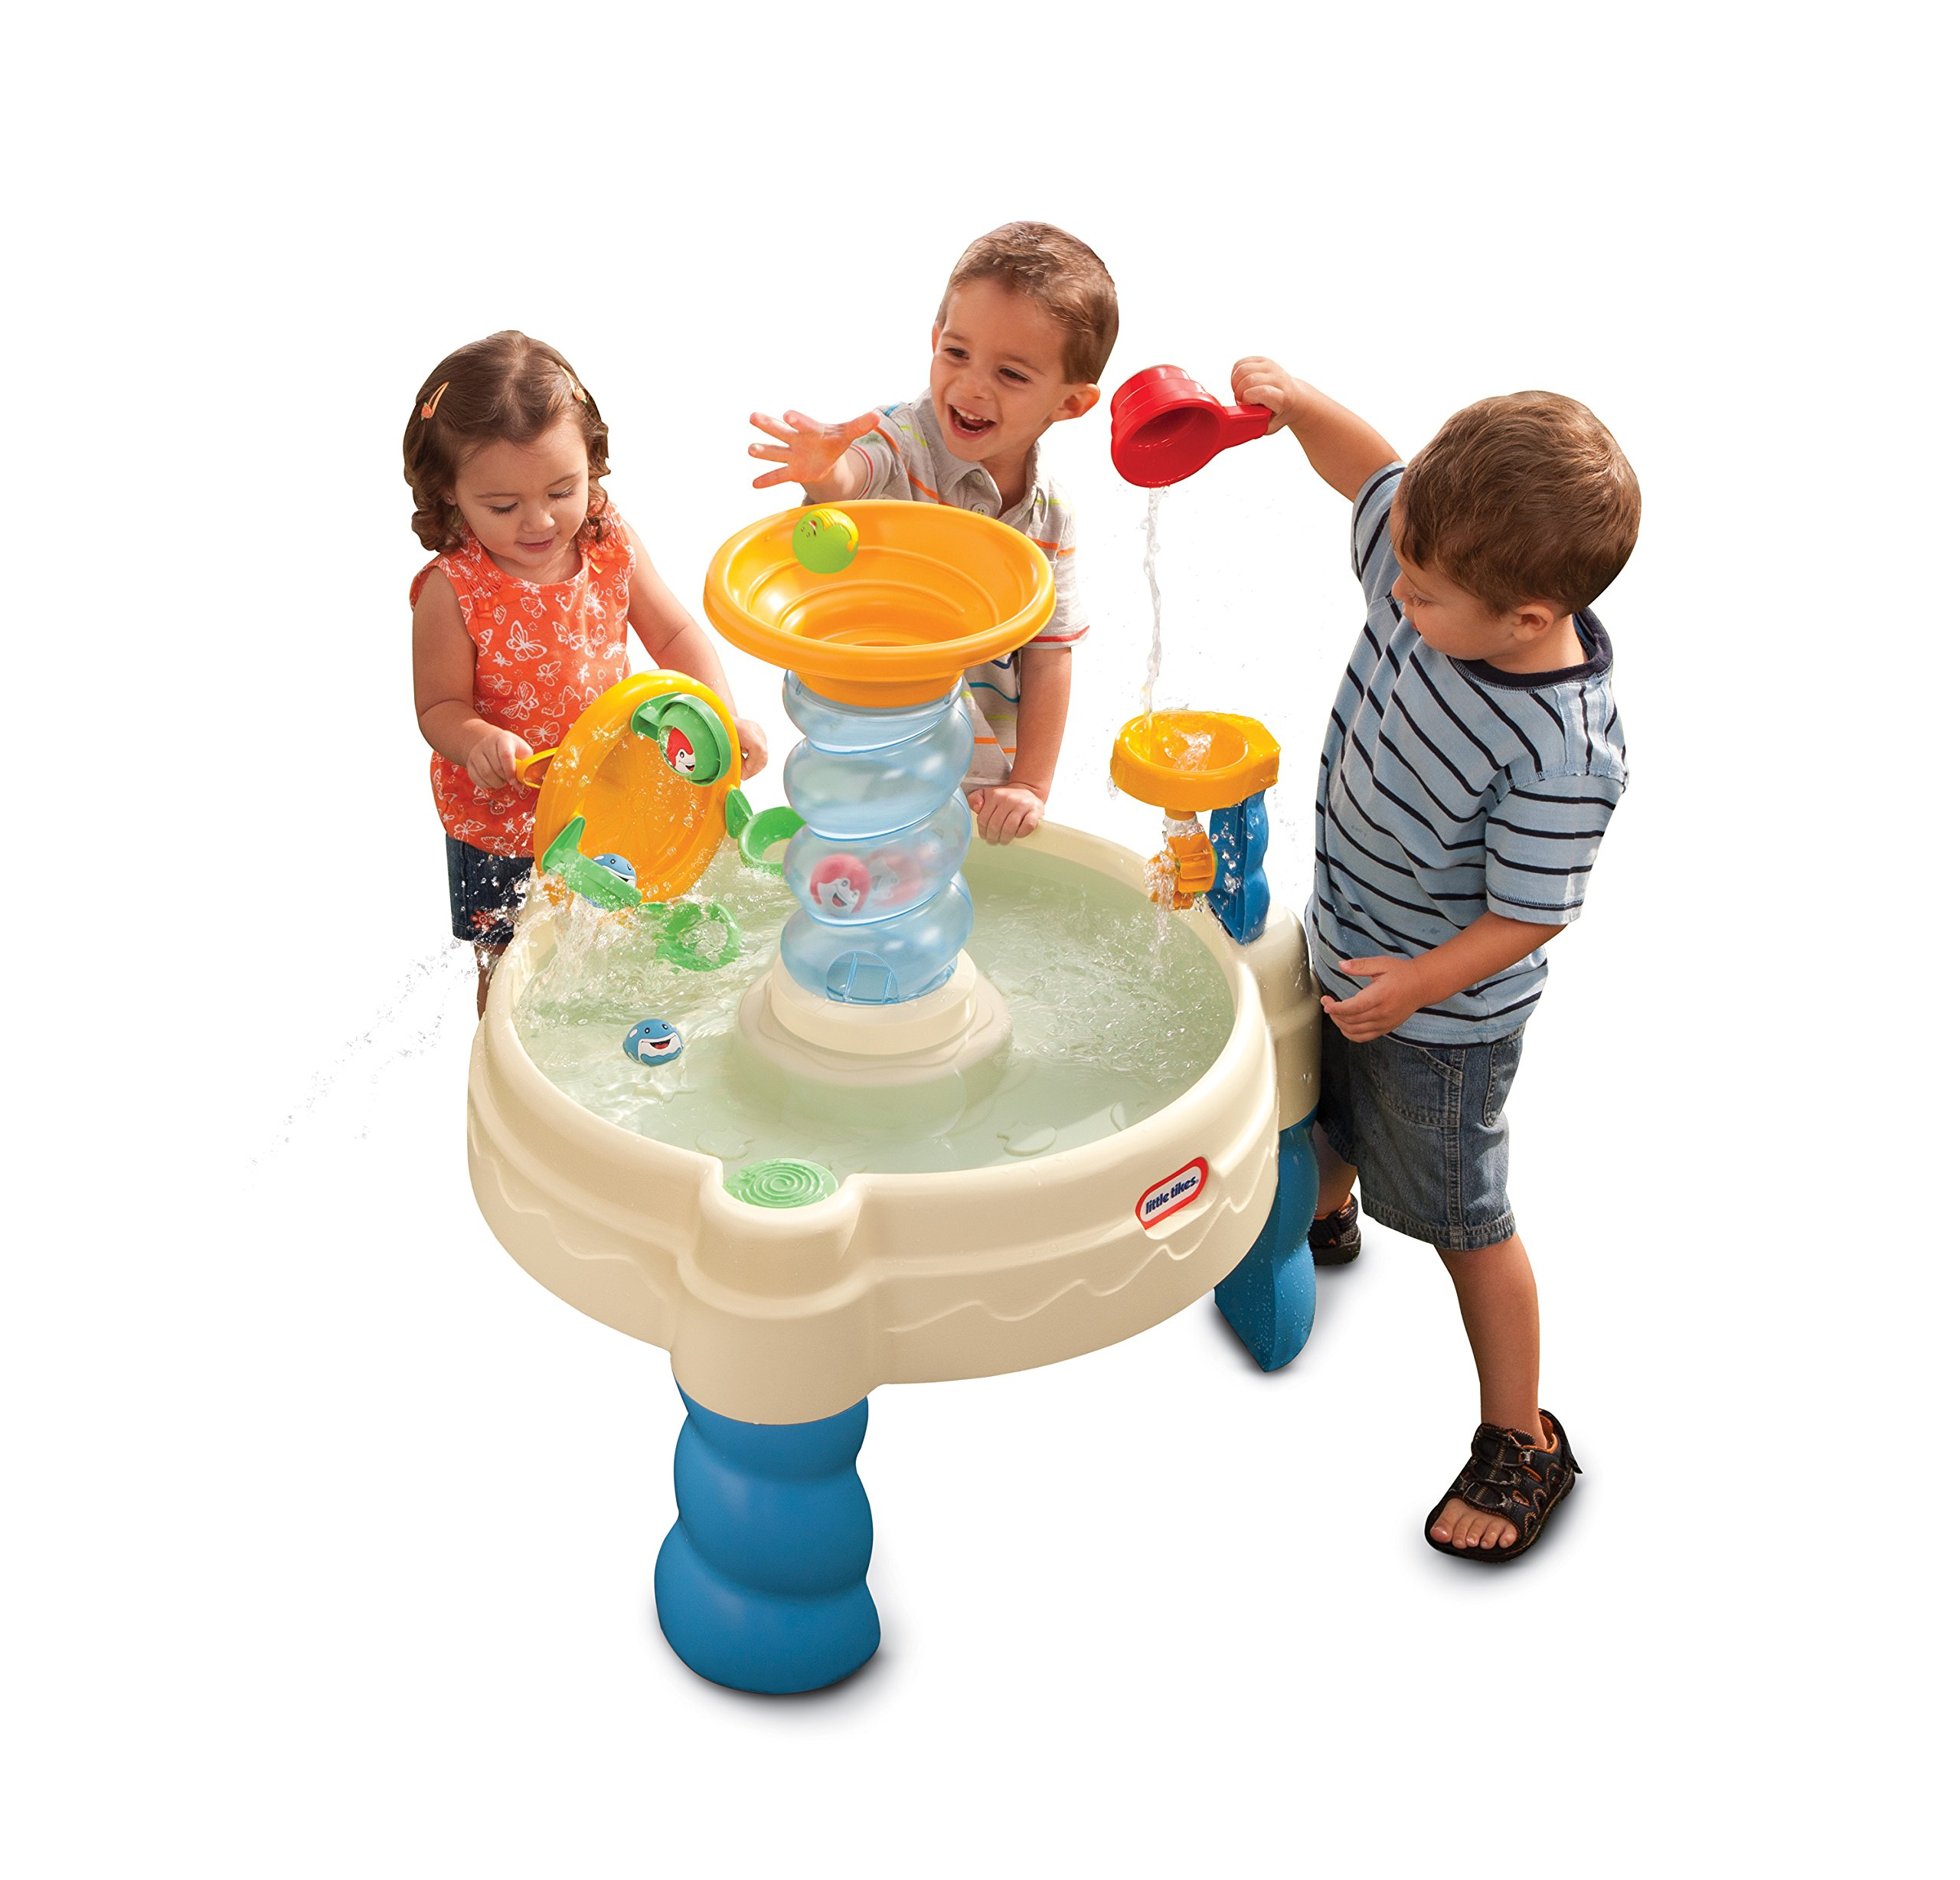 Outdoor Toddler Toys Boats : Best outdoor water toys for toddlers to have fun in the